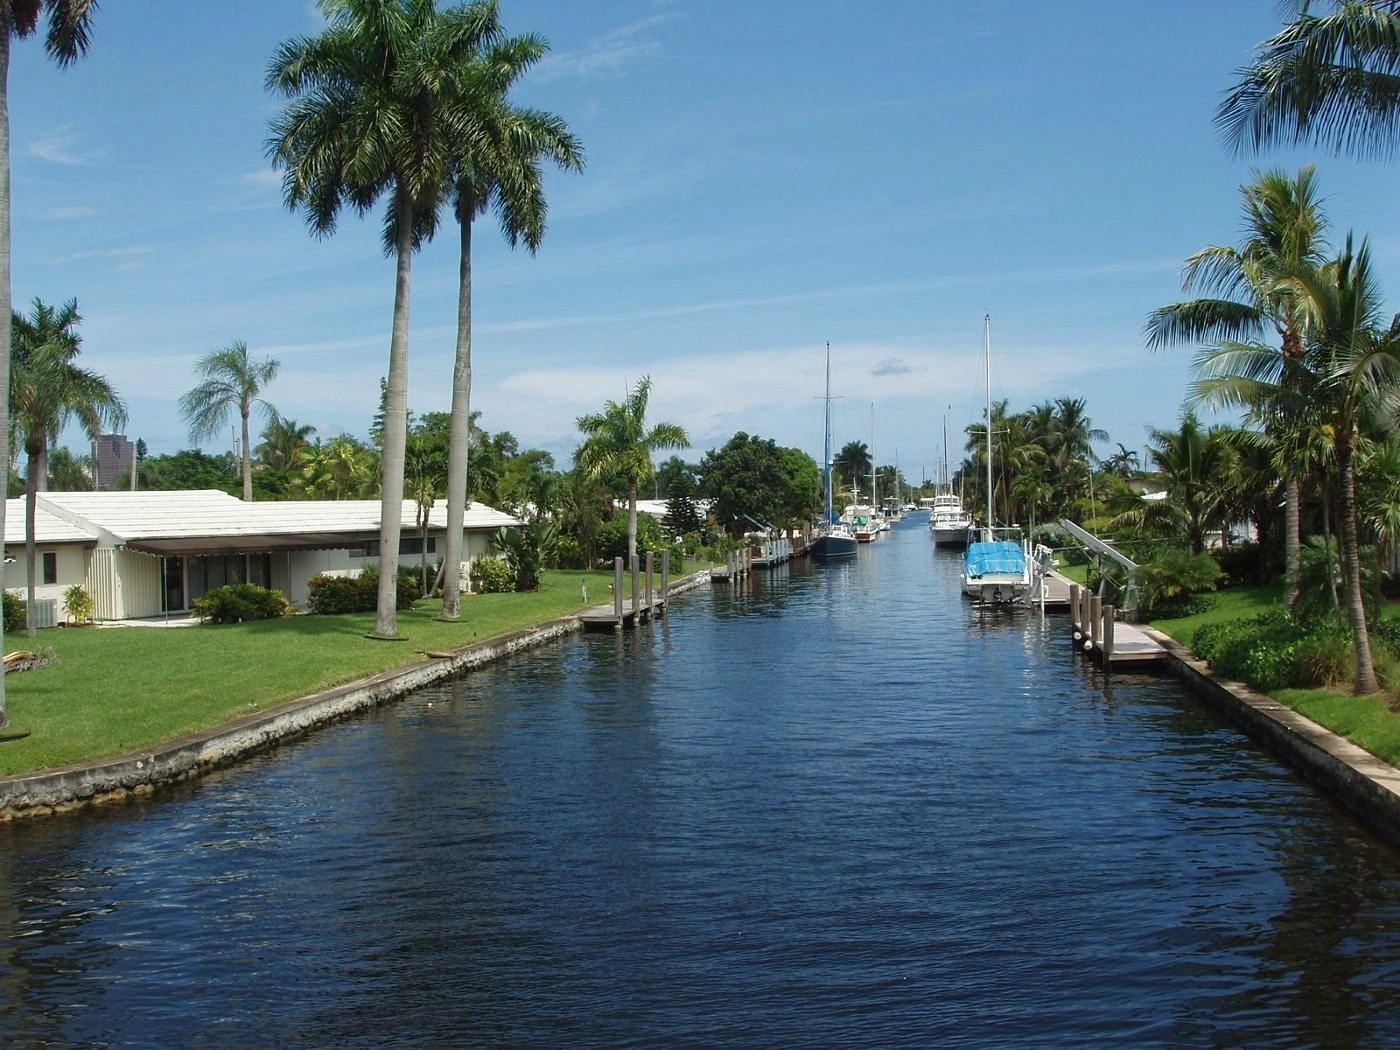 A canal in Fort Lauderdale, Florida.